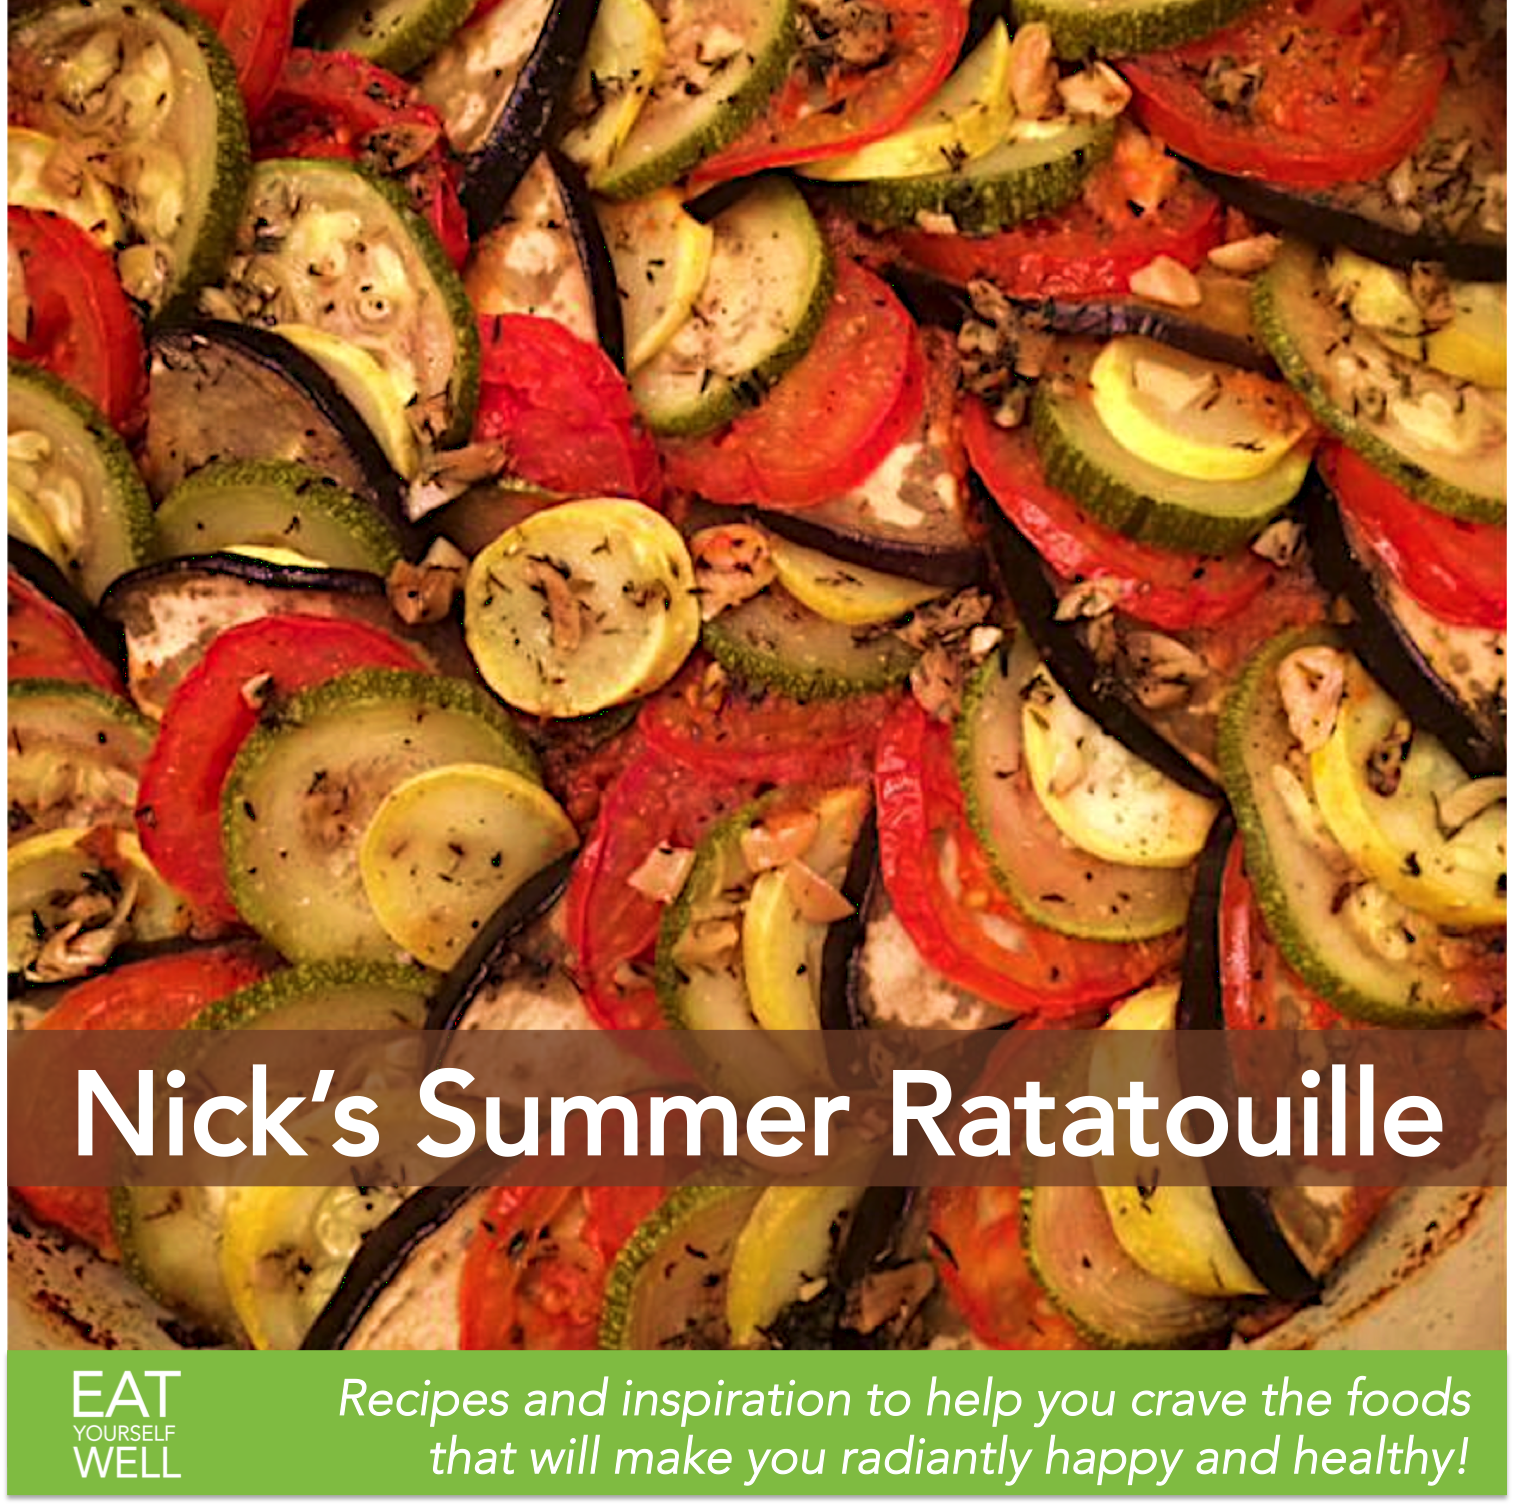 Nick's Summer Ratatouille